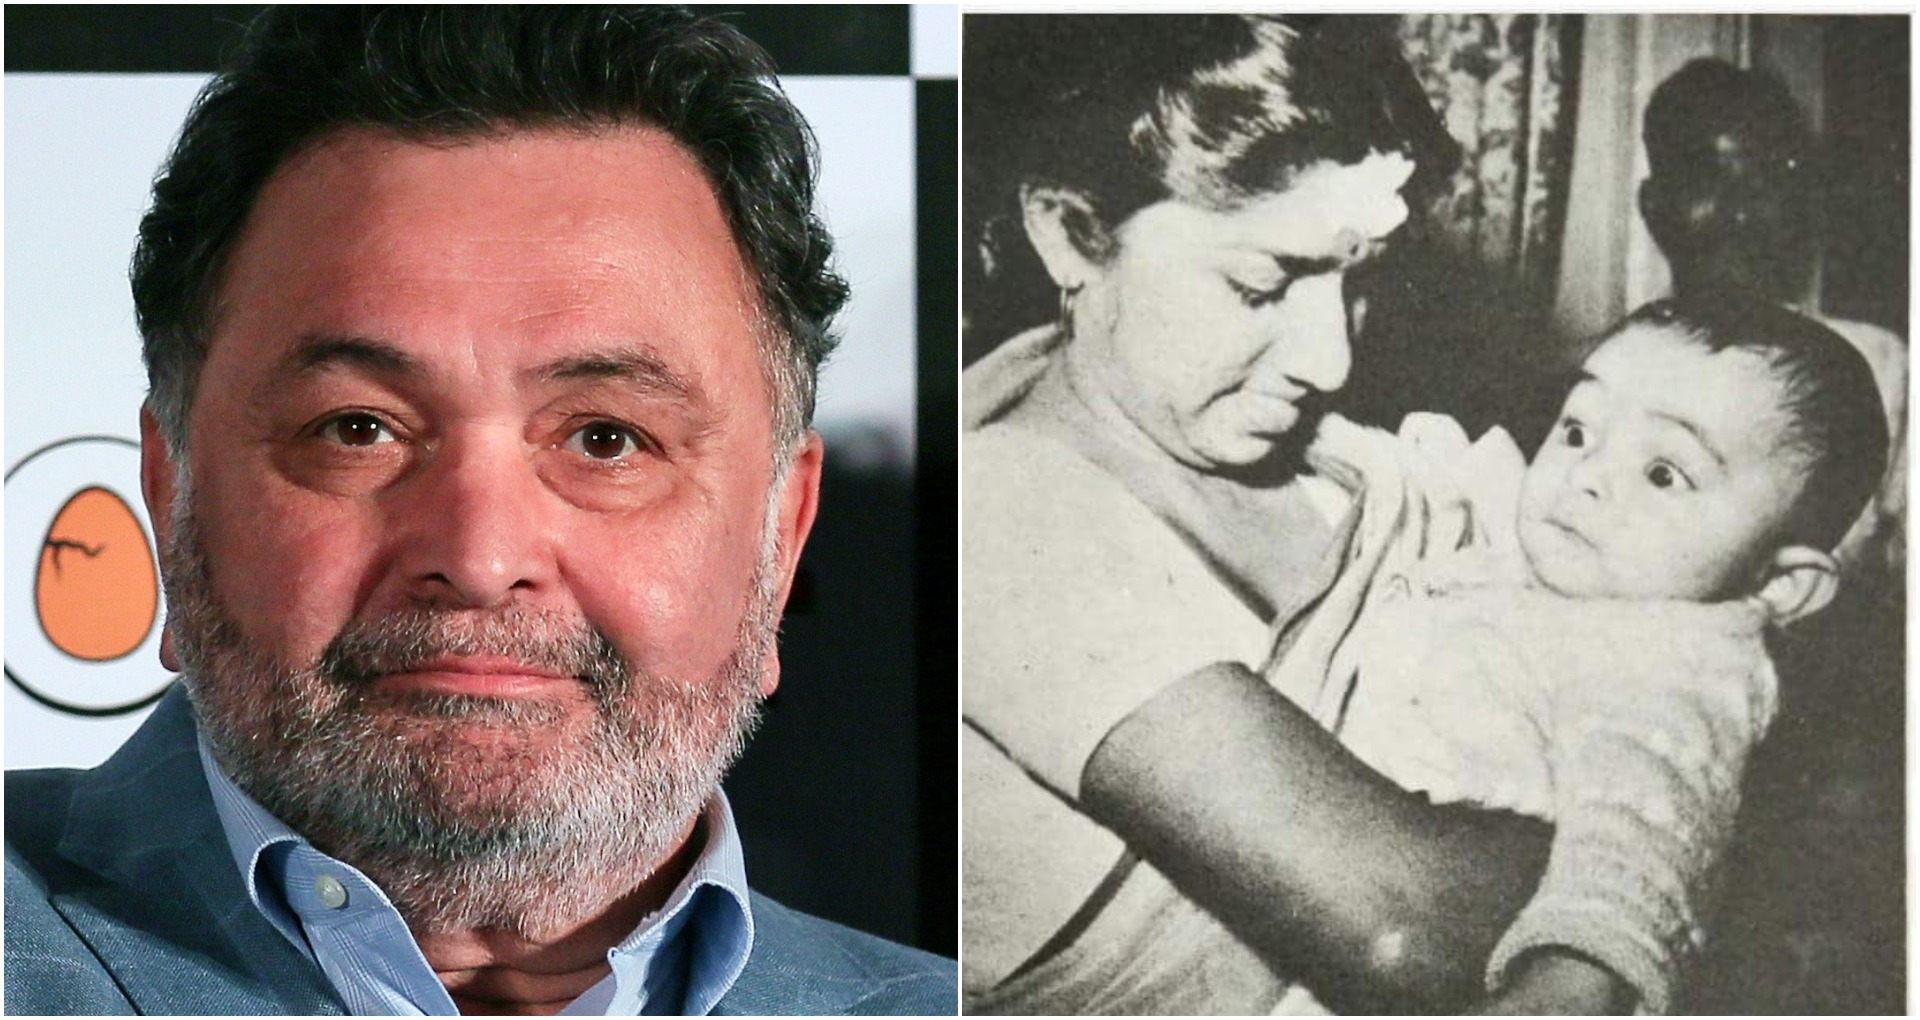 Rishi Kapoor shared a picture on Twitter, little Rishi Kapoor, seen with Lata Mangeshkar, is going viral on social media